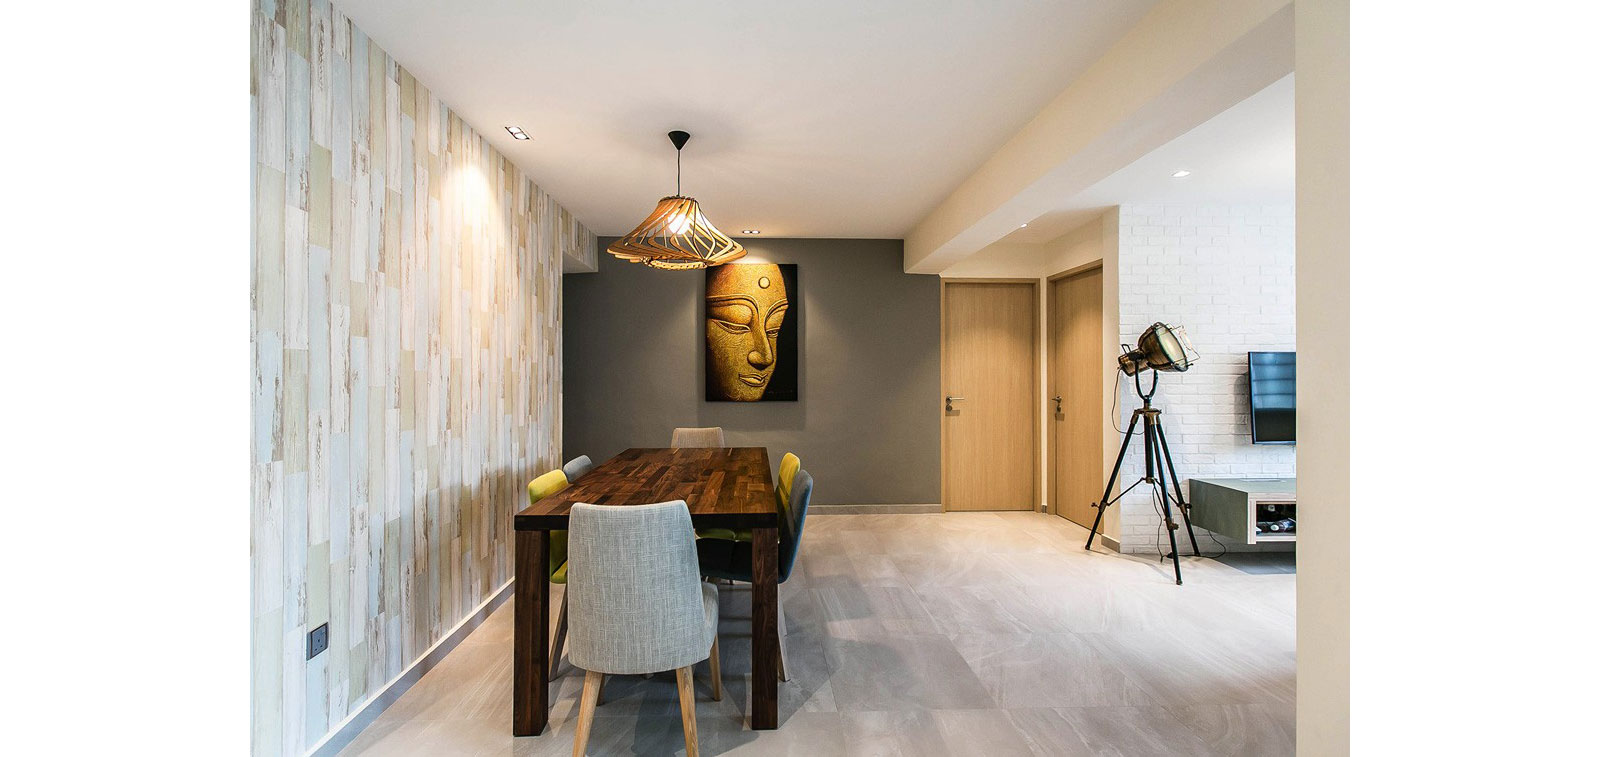 Senior interior design jobs singapore